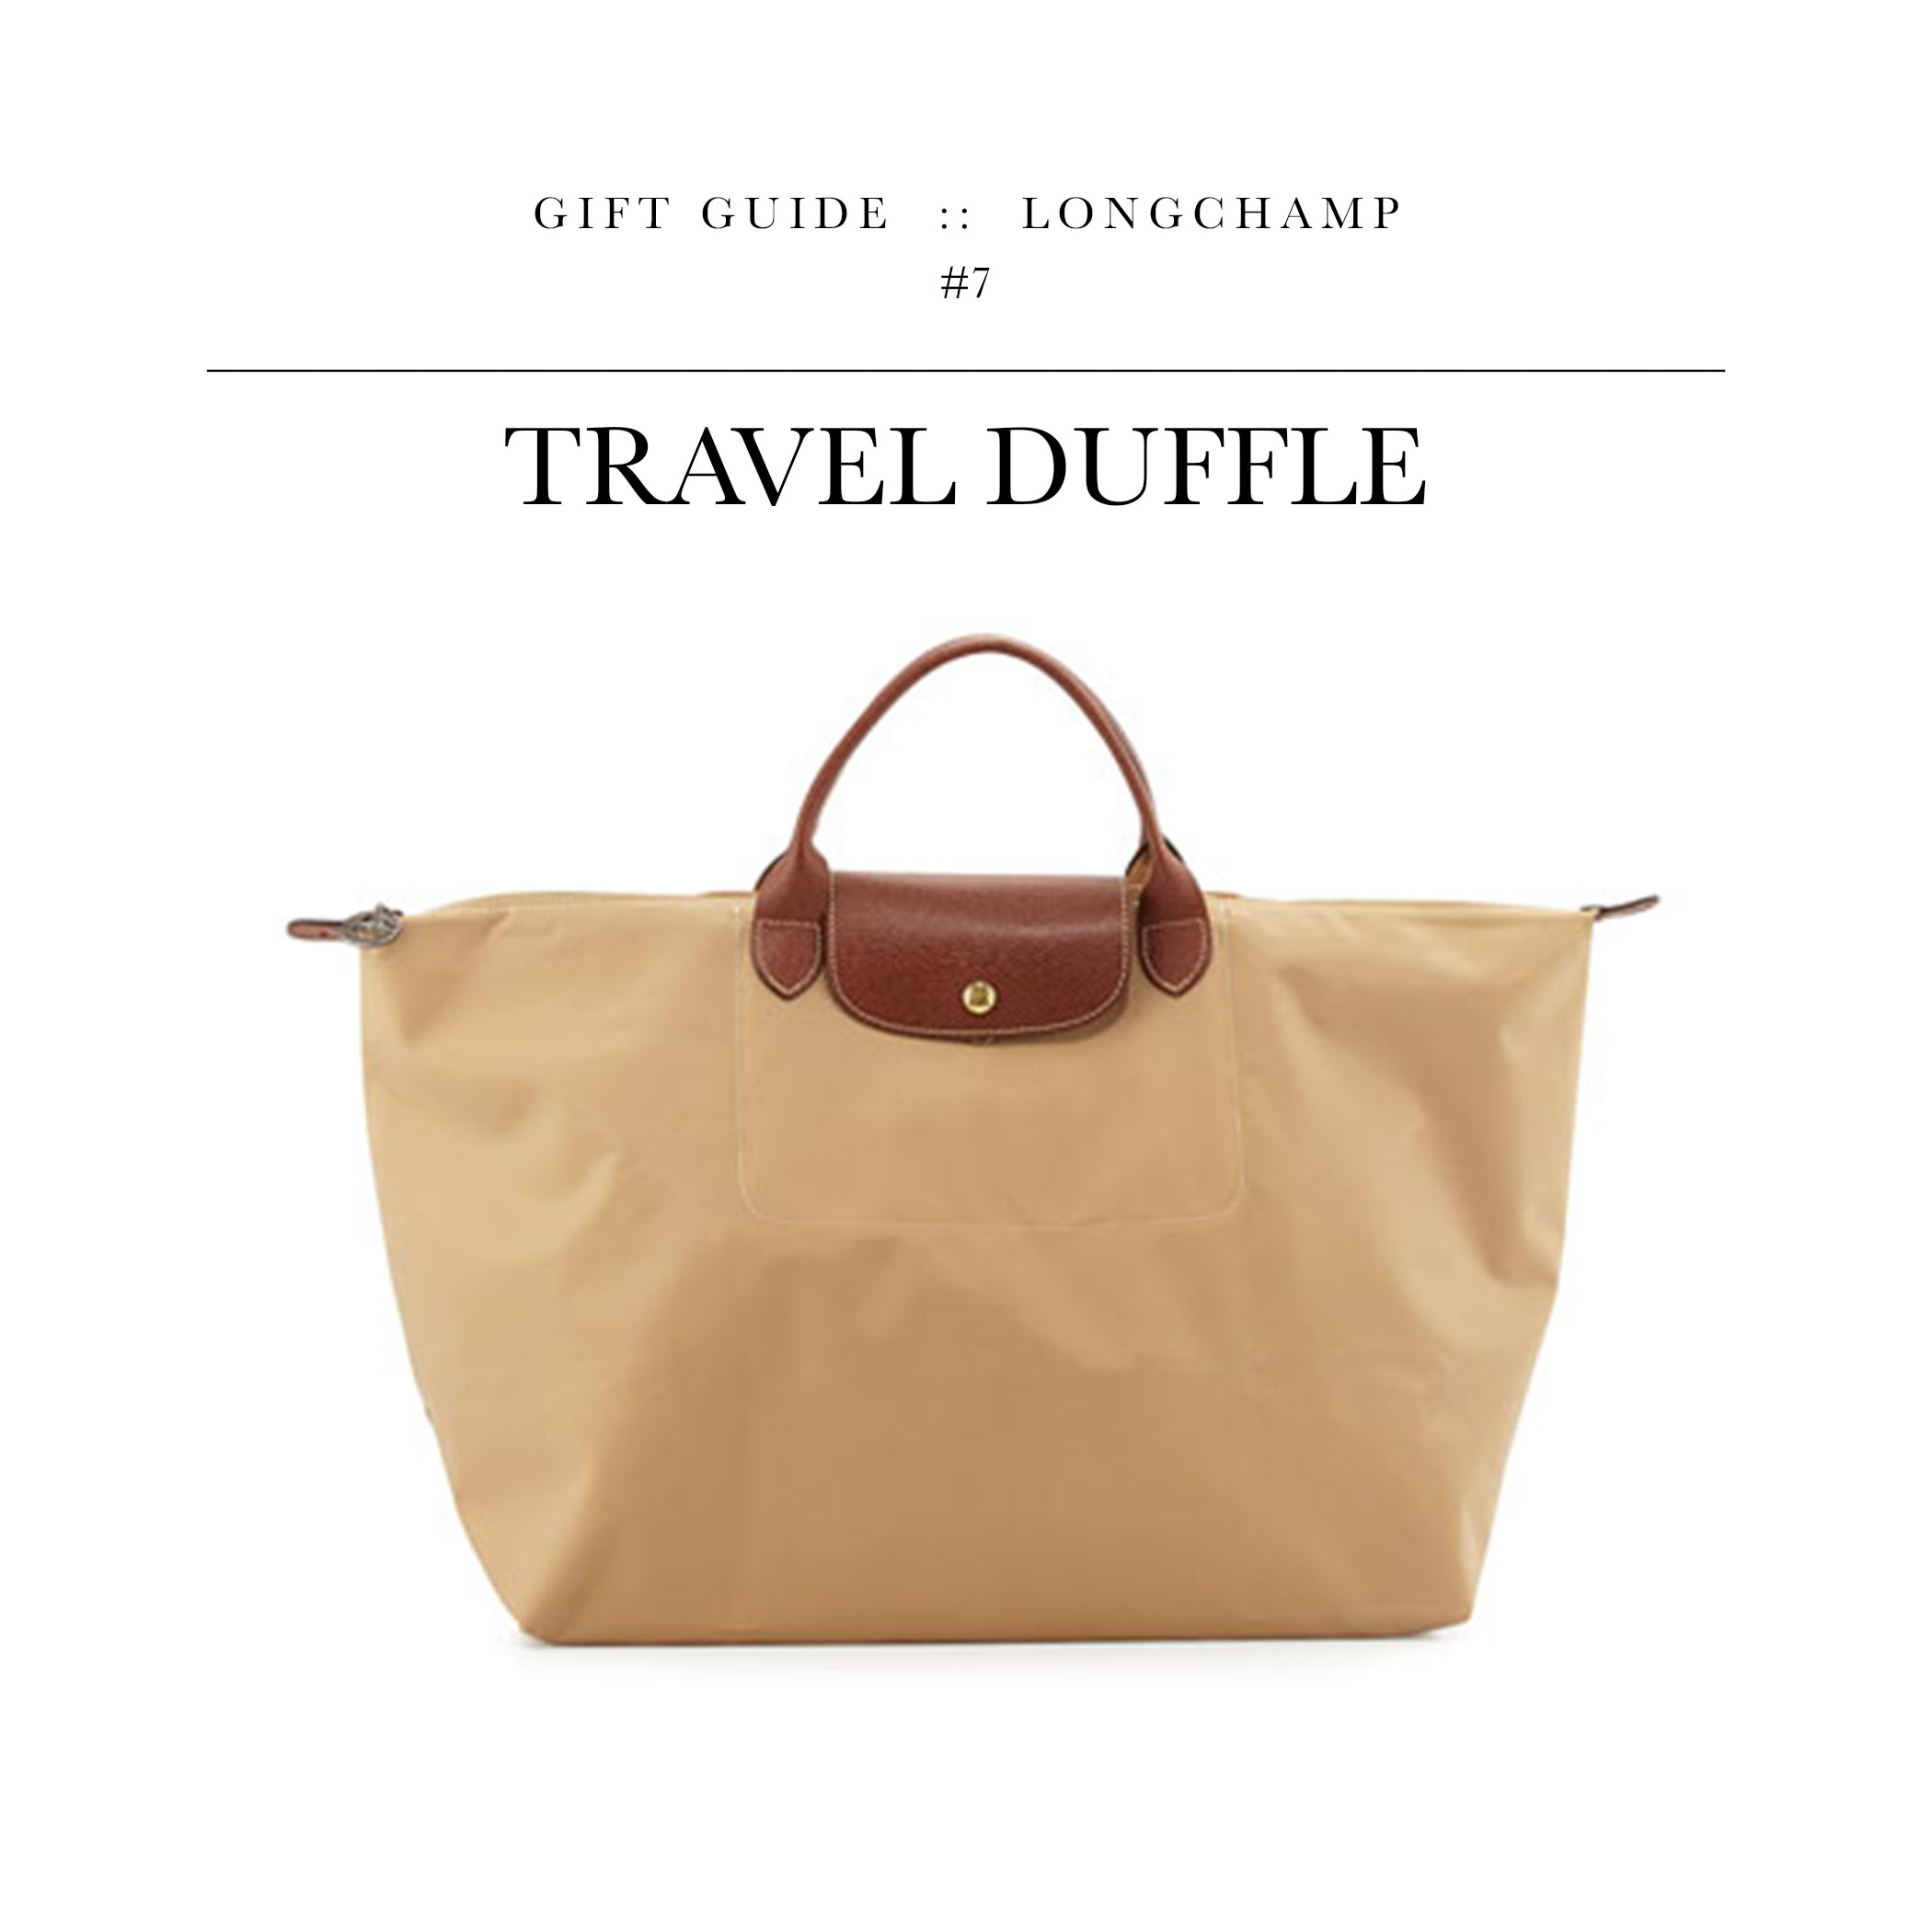 Travel Duffle  via Longchamp // A weekender that won't murder your bank account.